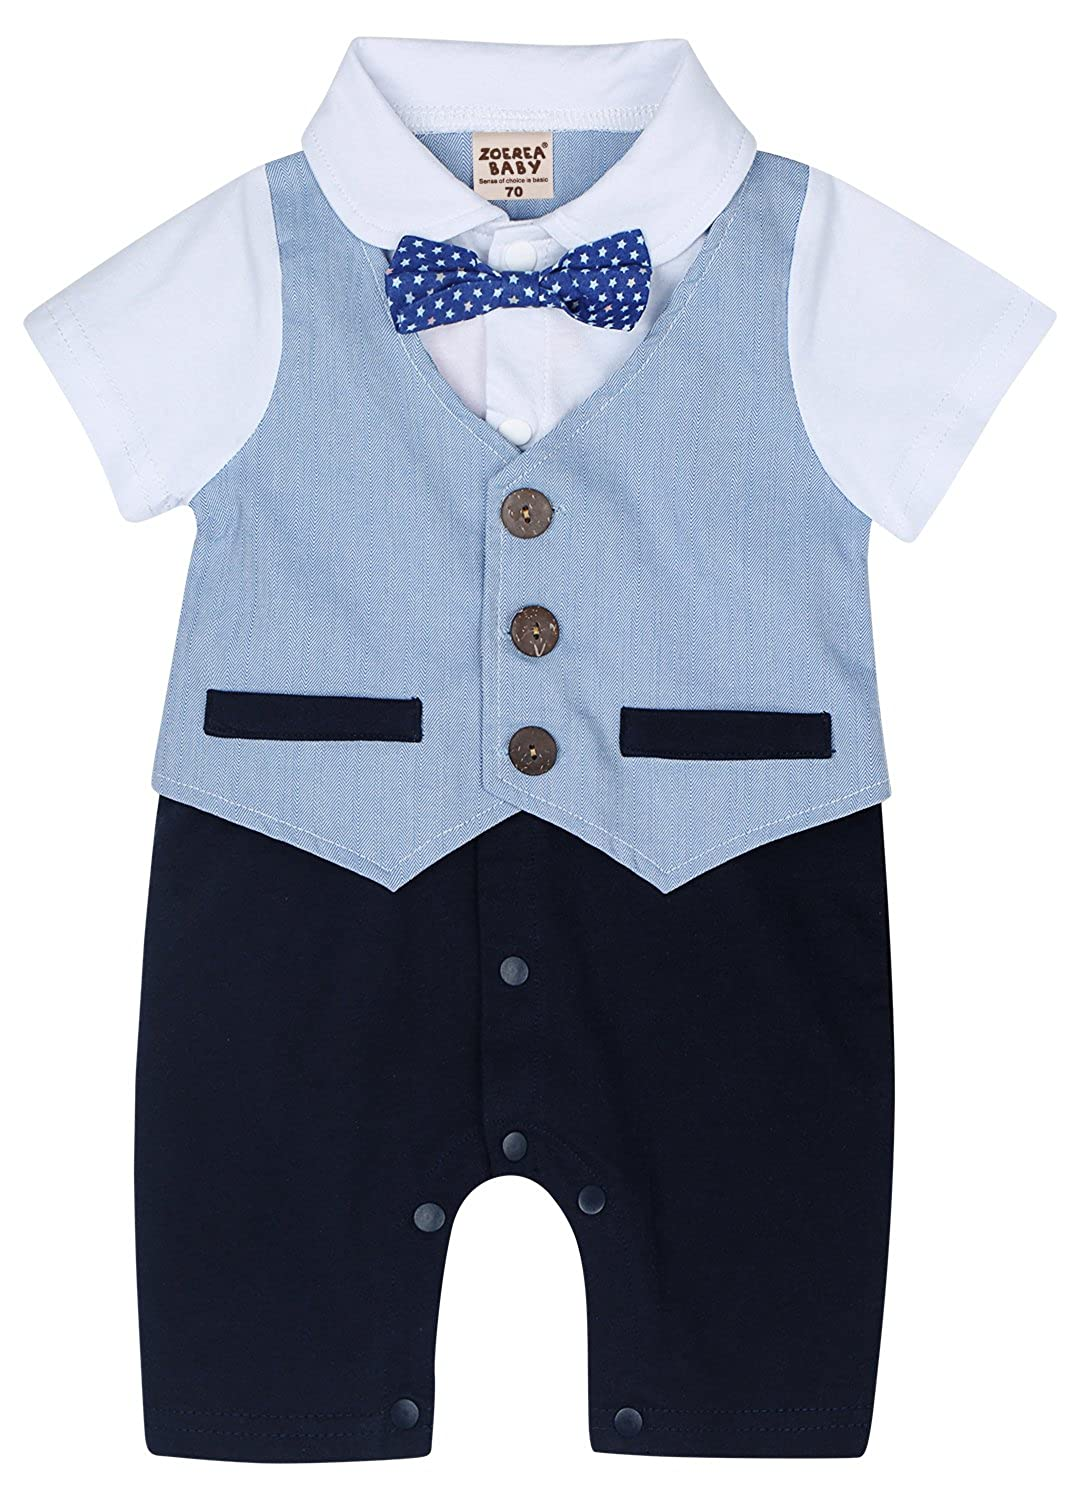 e824ffb2d362 Amazon.com  ZOEREA Baby Boy Stripe Suits Bow-Tie Short Sleeve Shirt ...